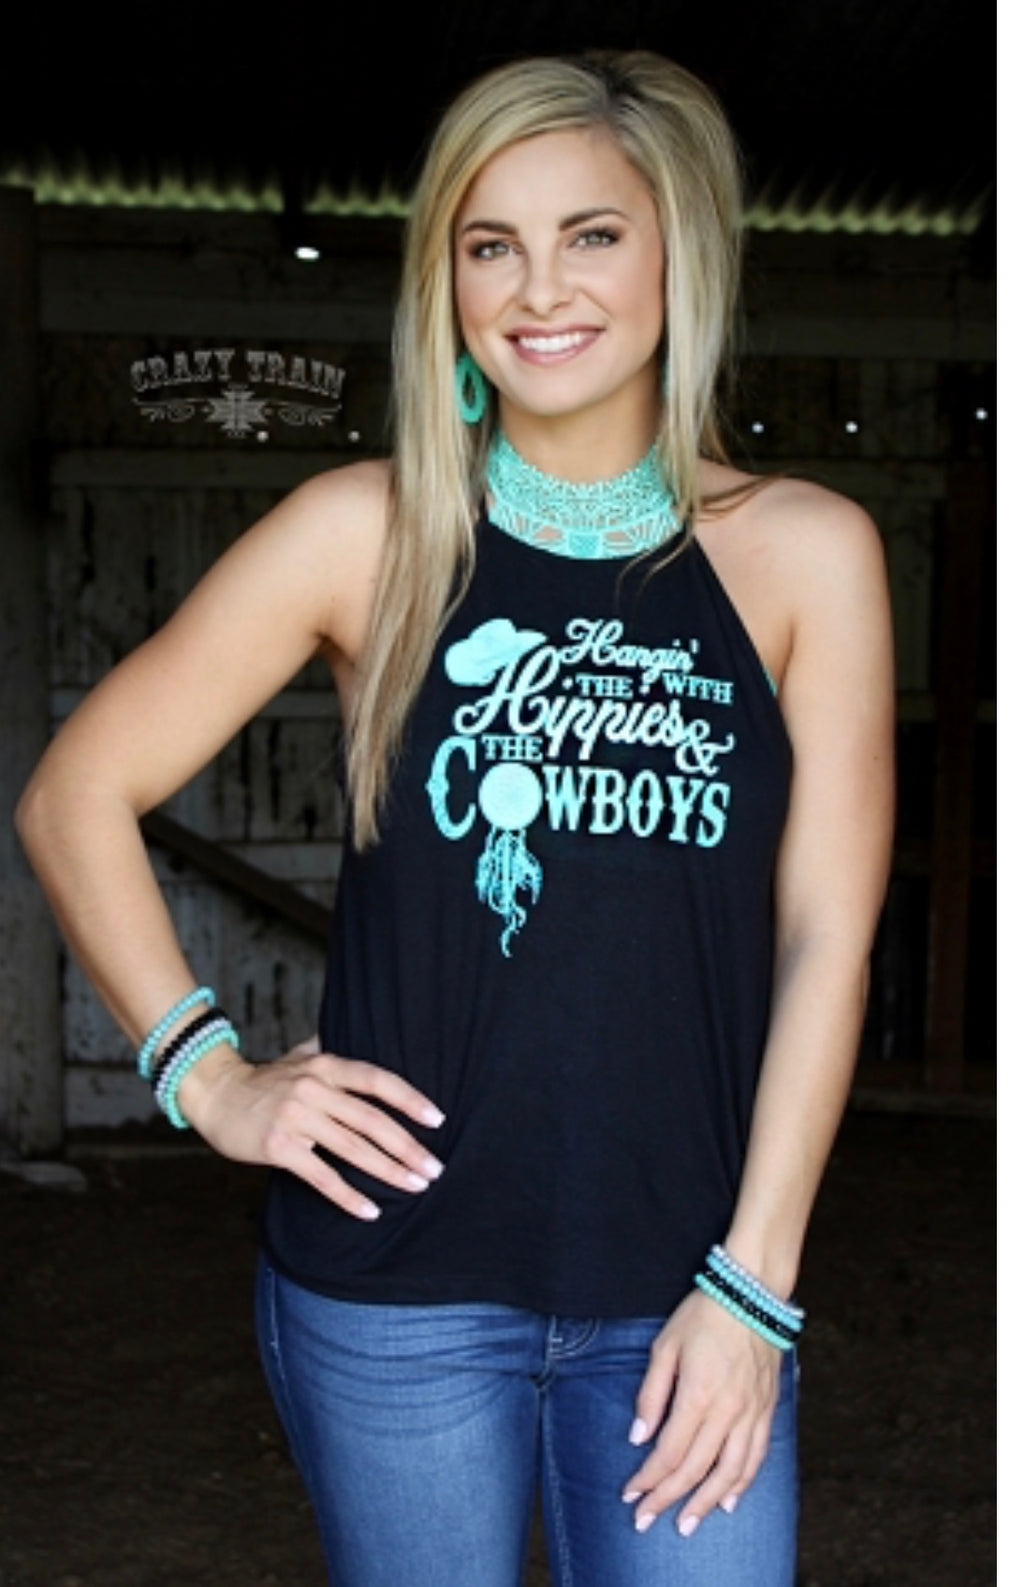 Hippies & Cowboys Tank